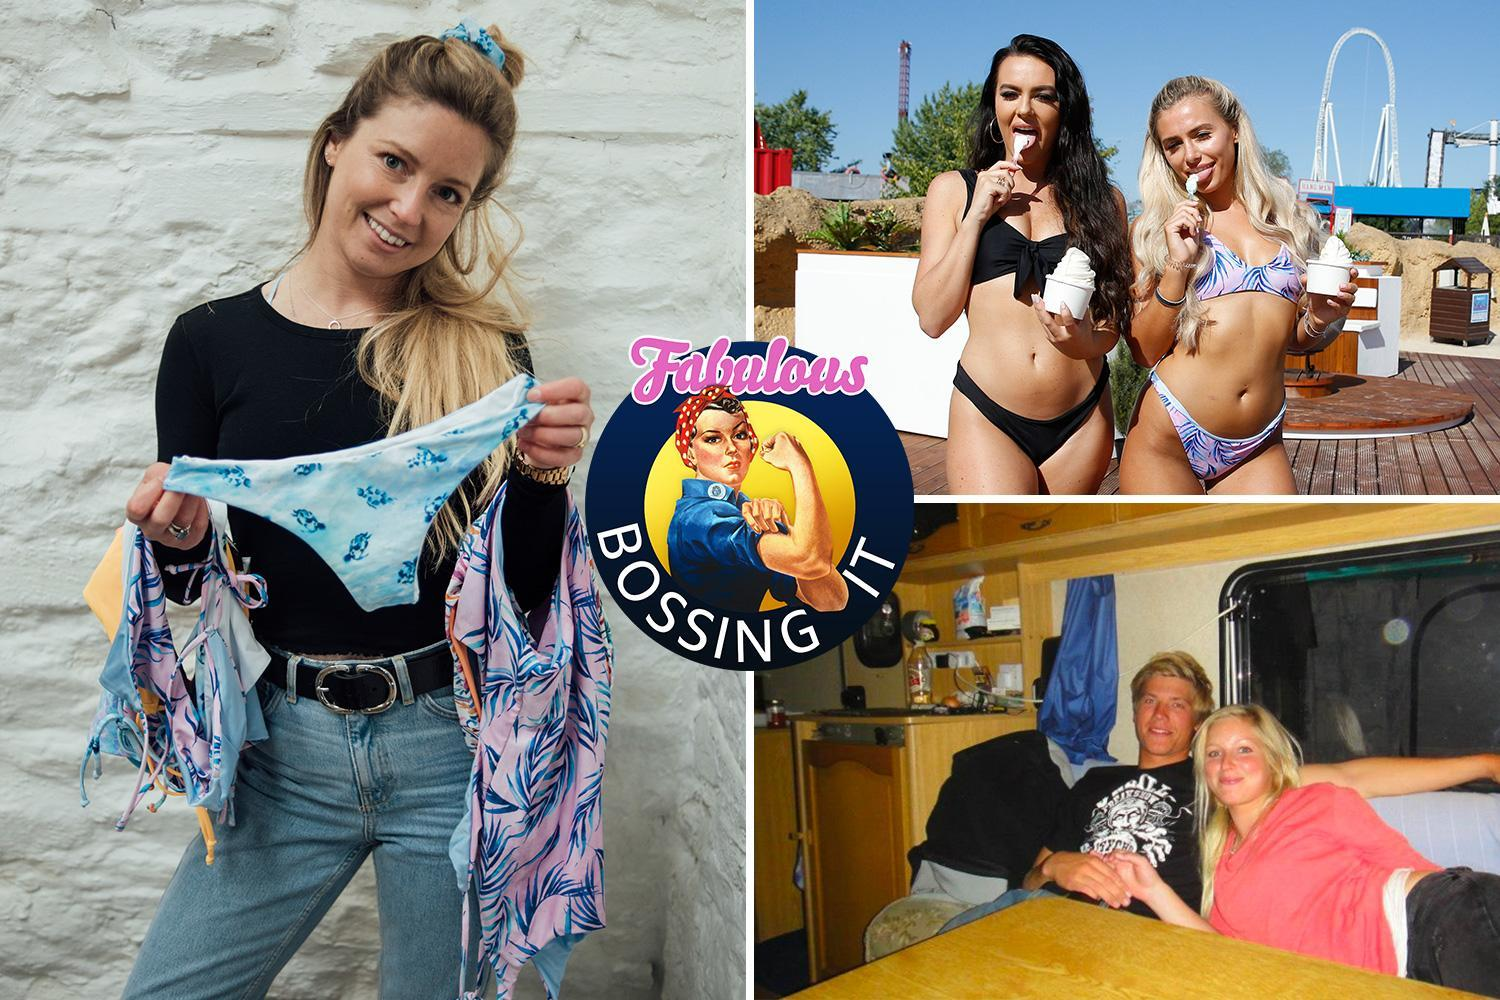 I was living in a caravan when I launched my bikini brand – now it's worth £150K and a fave of Love Island stars